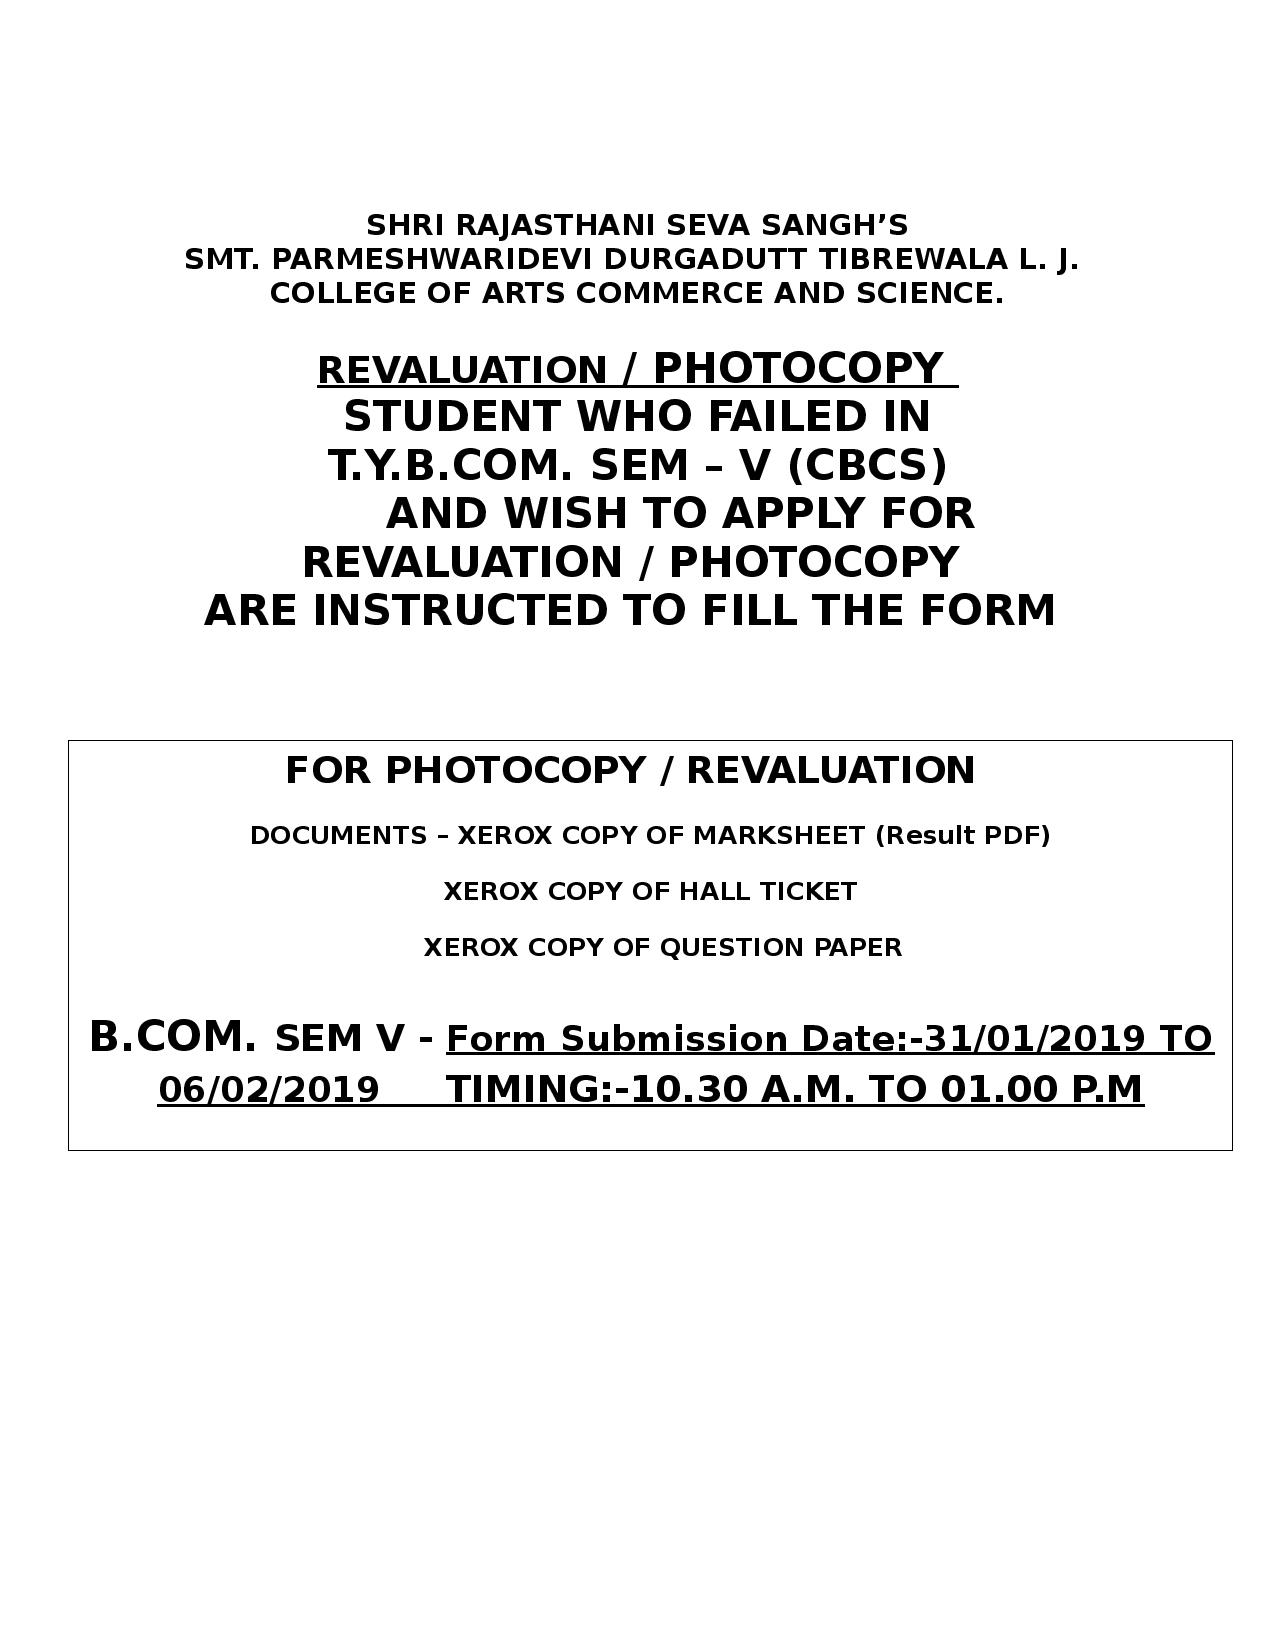 Revaluation/ Photocopy student who failed in T Y B COM  SEM – V